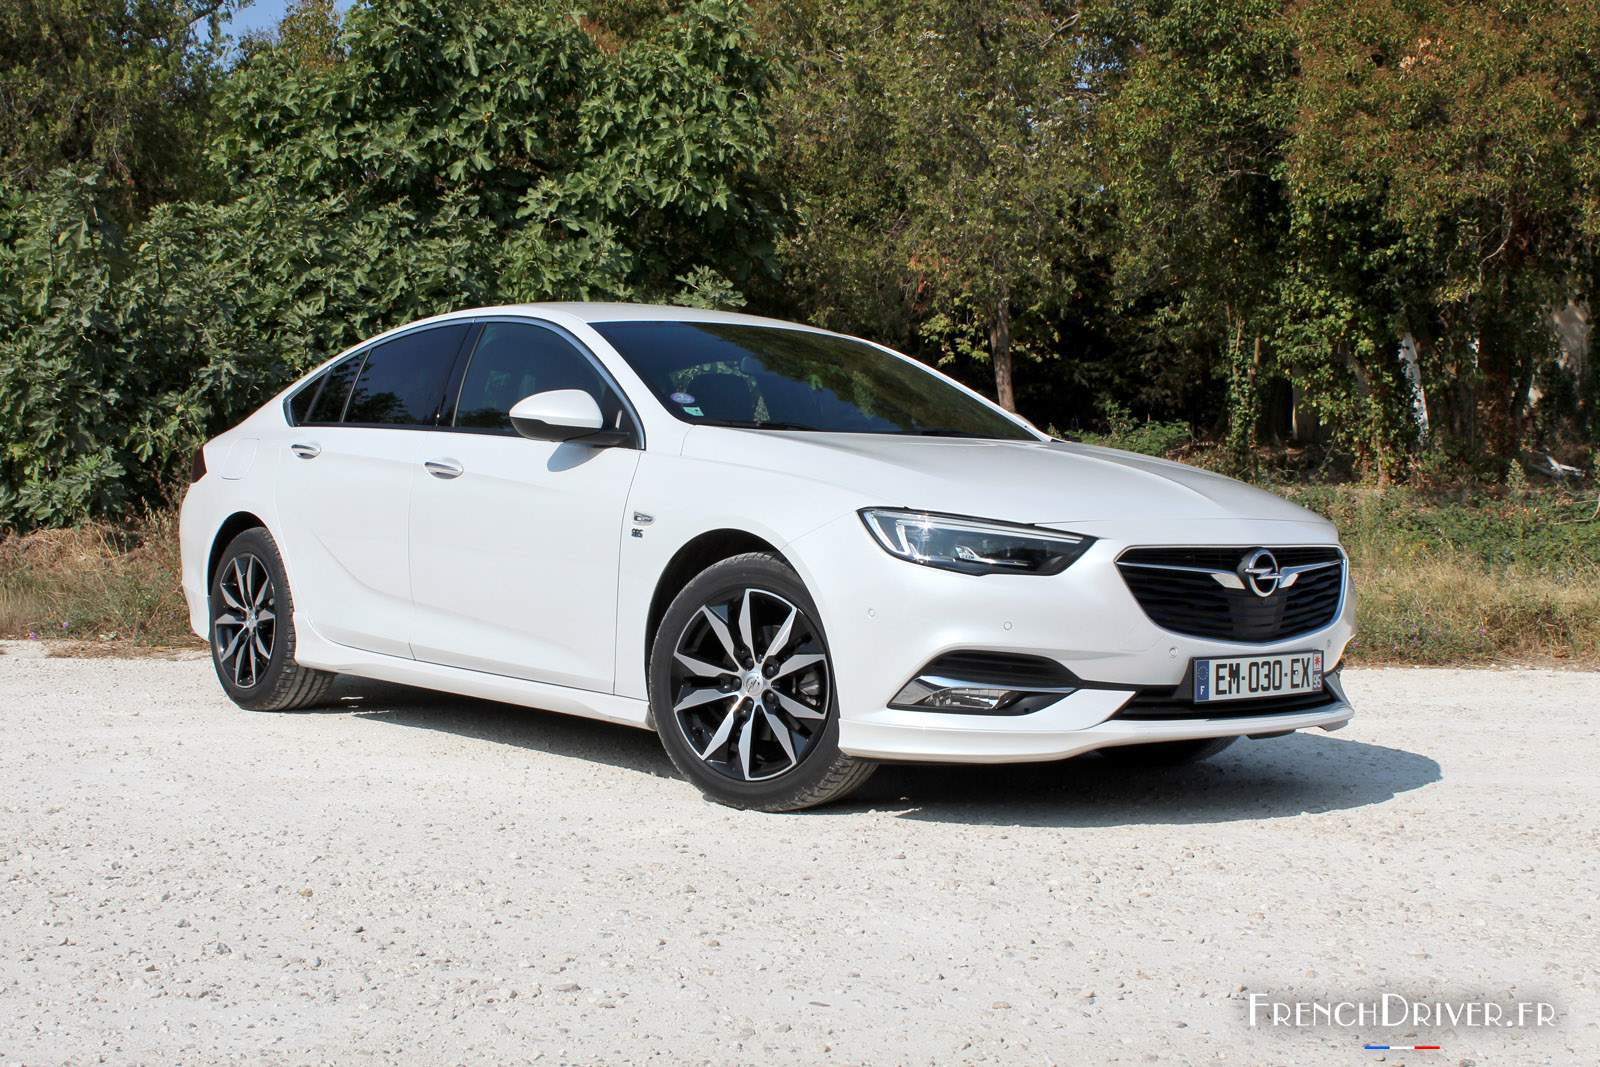 essai opel insignia grand sport nouvelle donne french driver. Black Bedroom Furniture Sets. Home Design Ideas